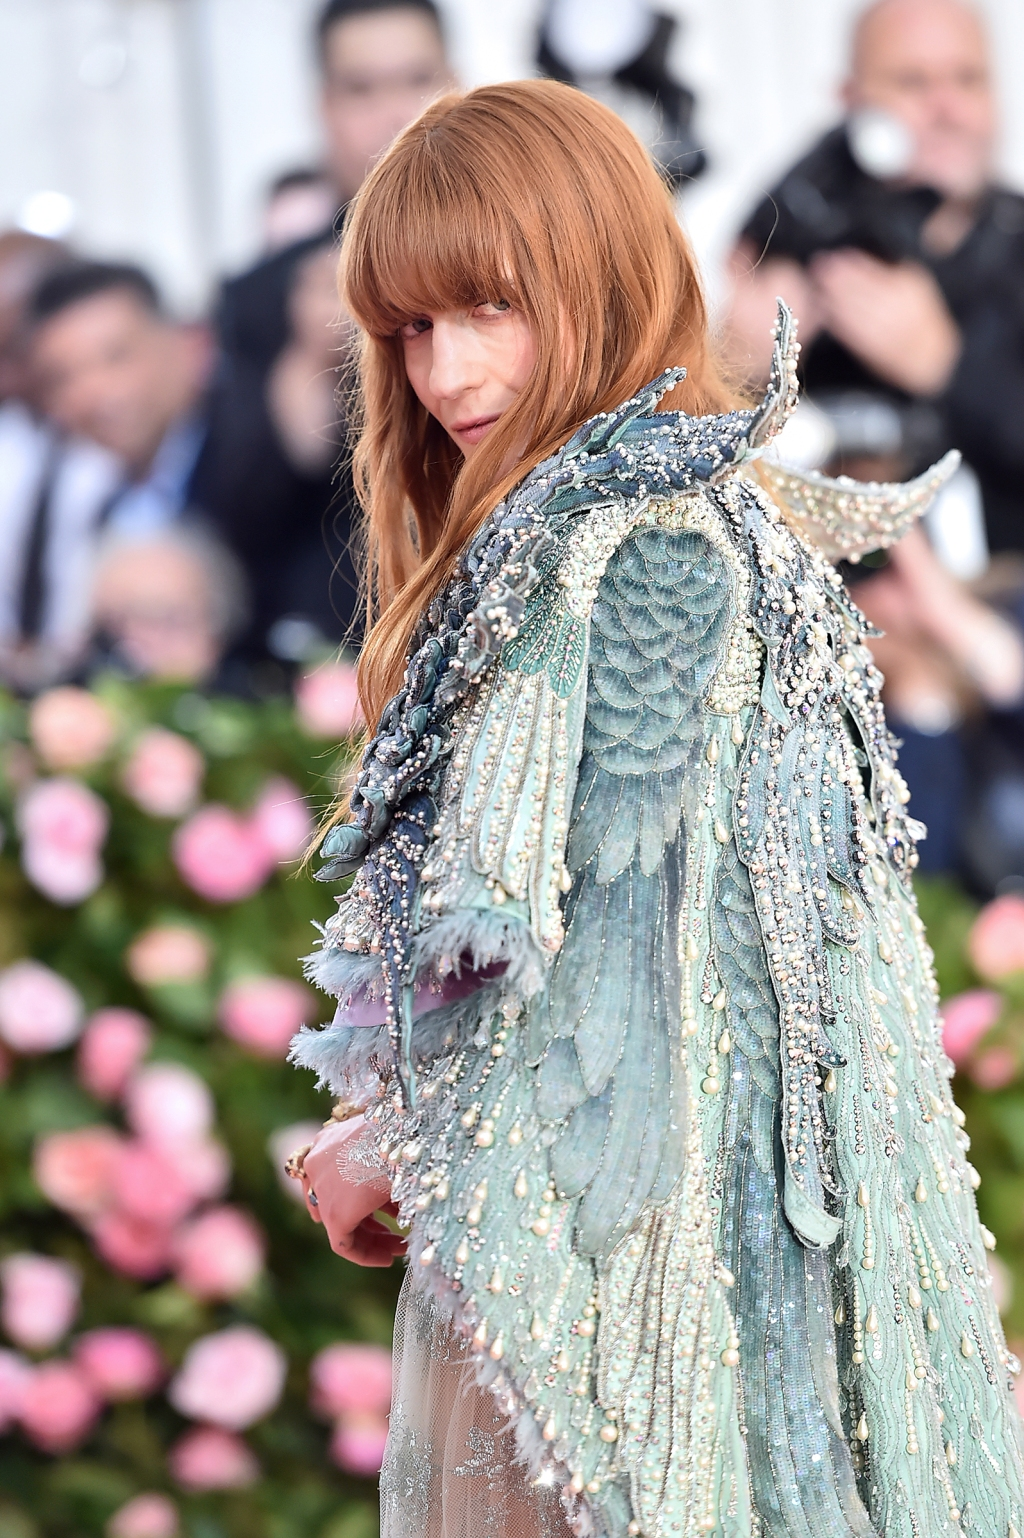 Florence Welch attends The 2019 Met Gala Celebrating Camp: Notes on Fashion at Metropolitan Museum of Art on May 06, 2019 in New York City.